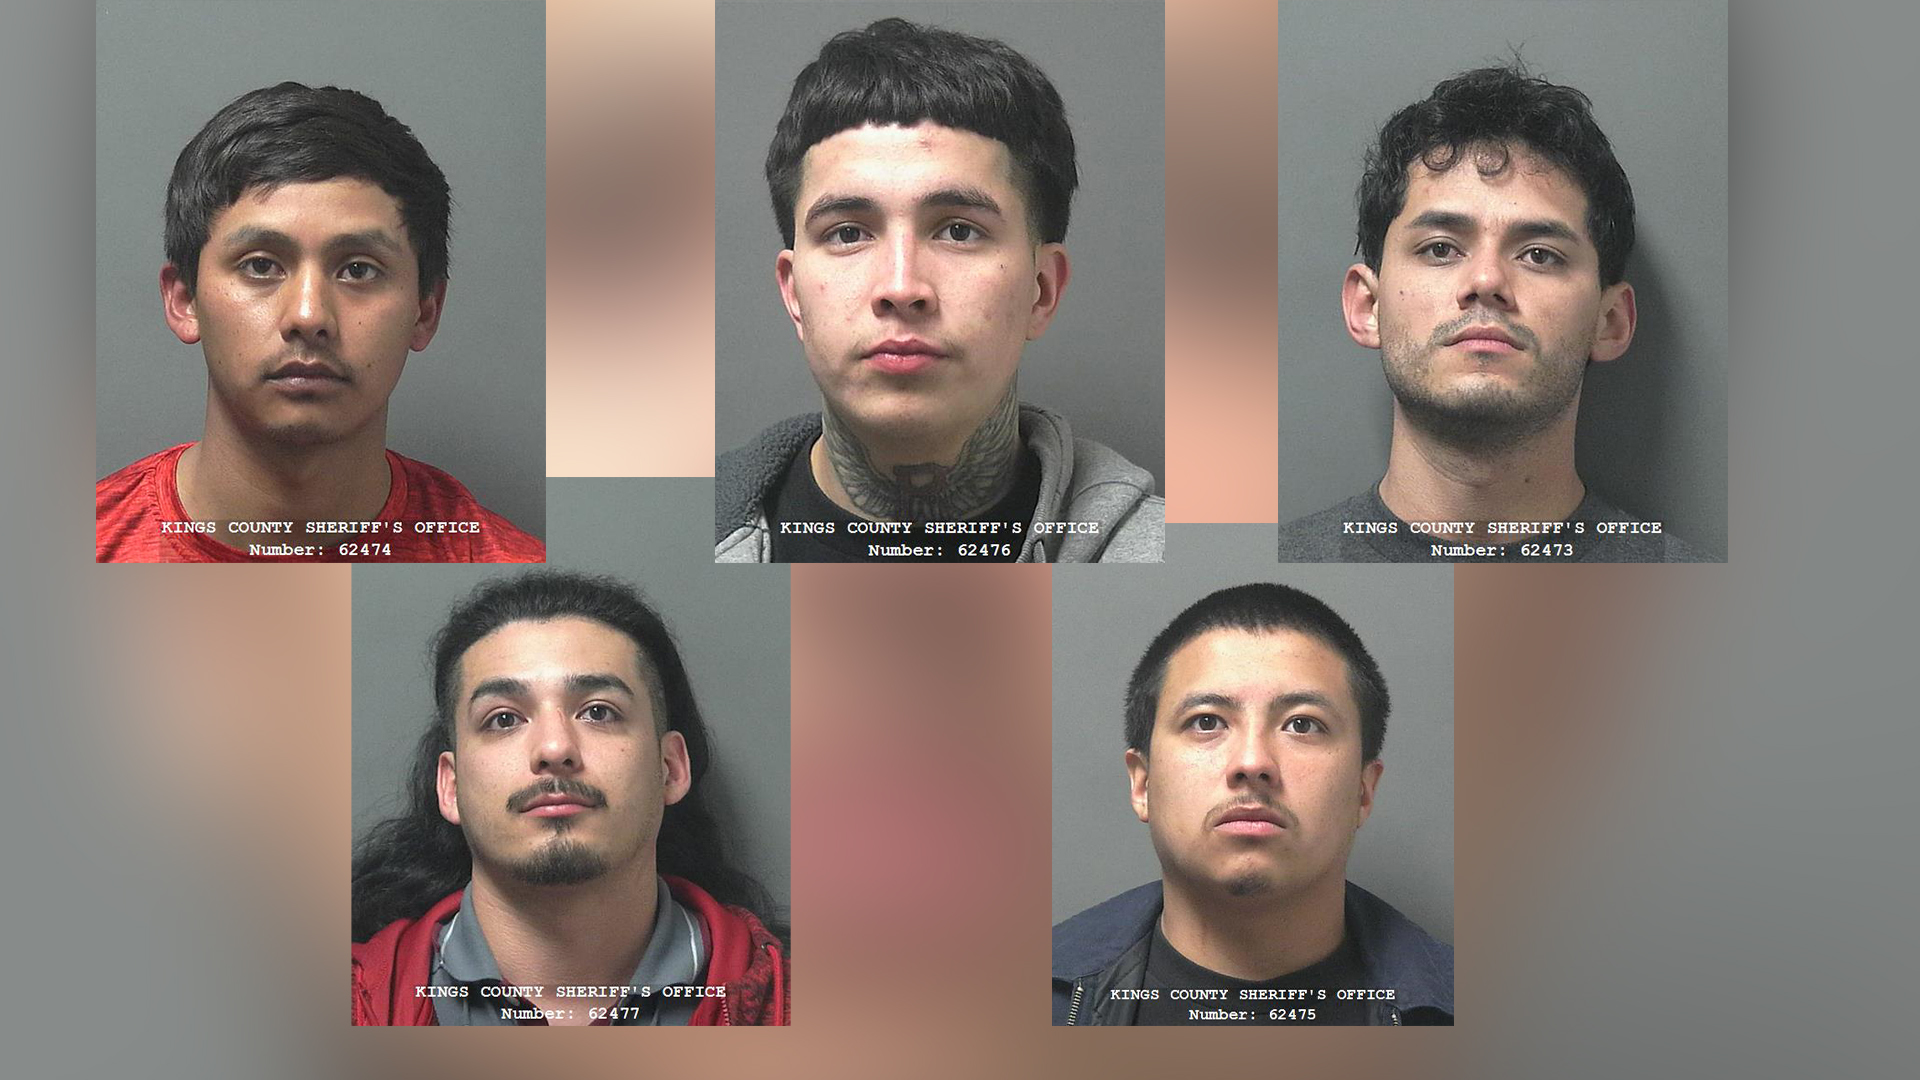 (Top, Left to Right) Sergio Lopez, Gemini Moreno, Jose Gomez. (Bottom, Left to Right) Lorenzo Diaz and Brian Segura Castro (Courtesy of the Kings County Sheriff's Office)